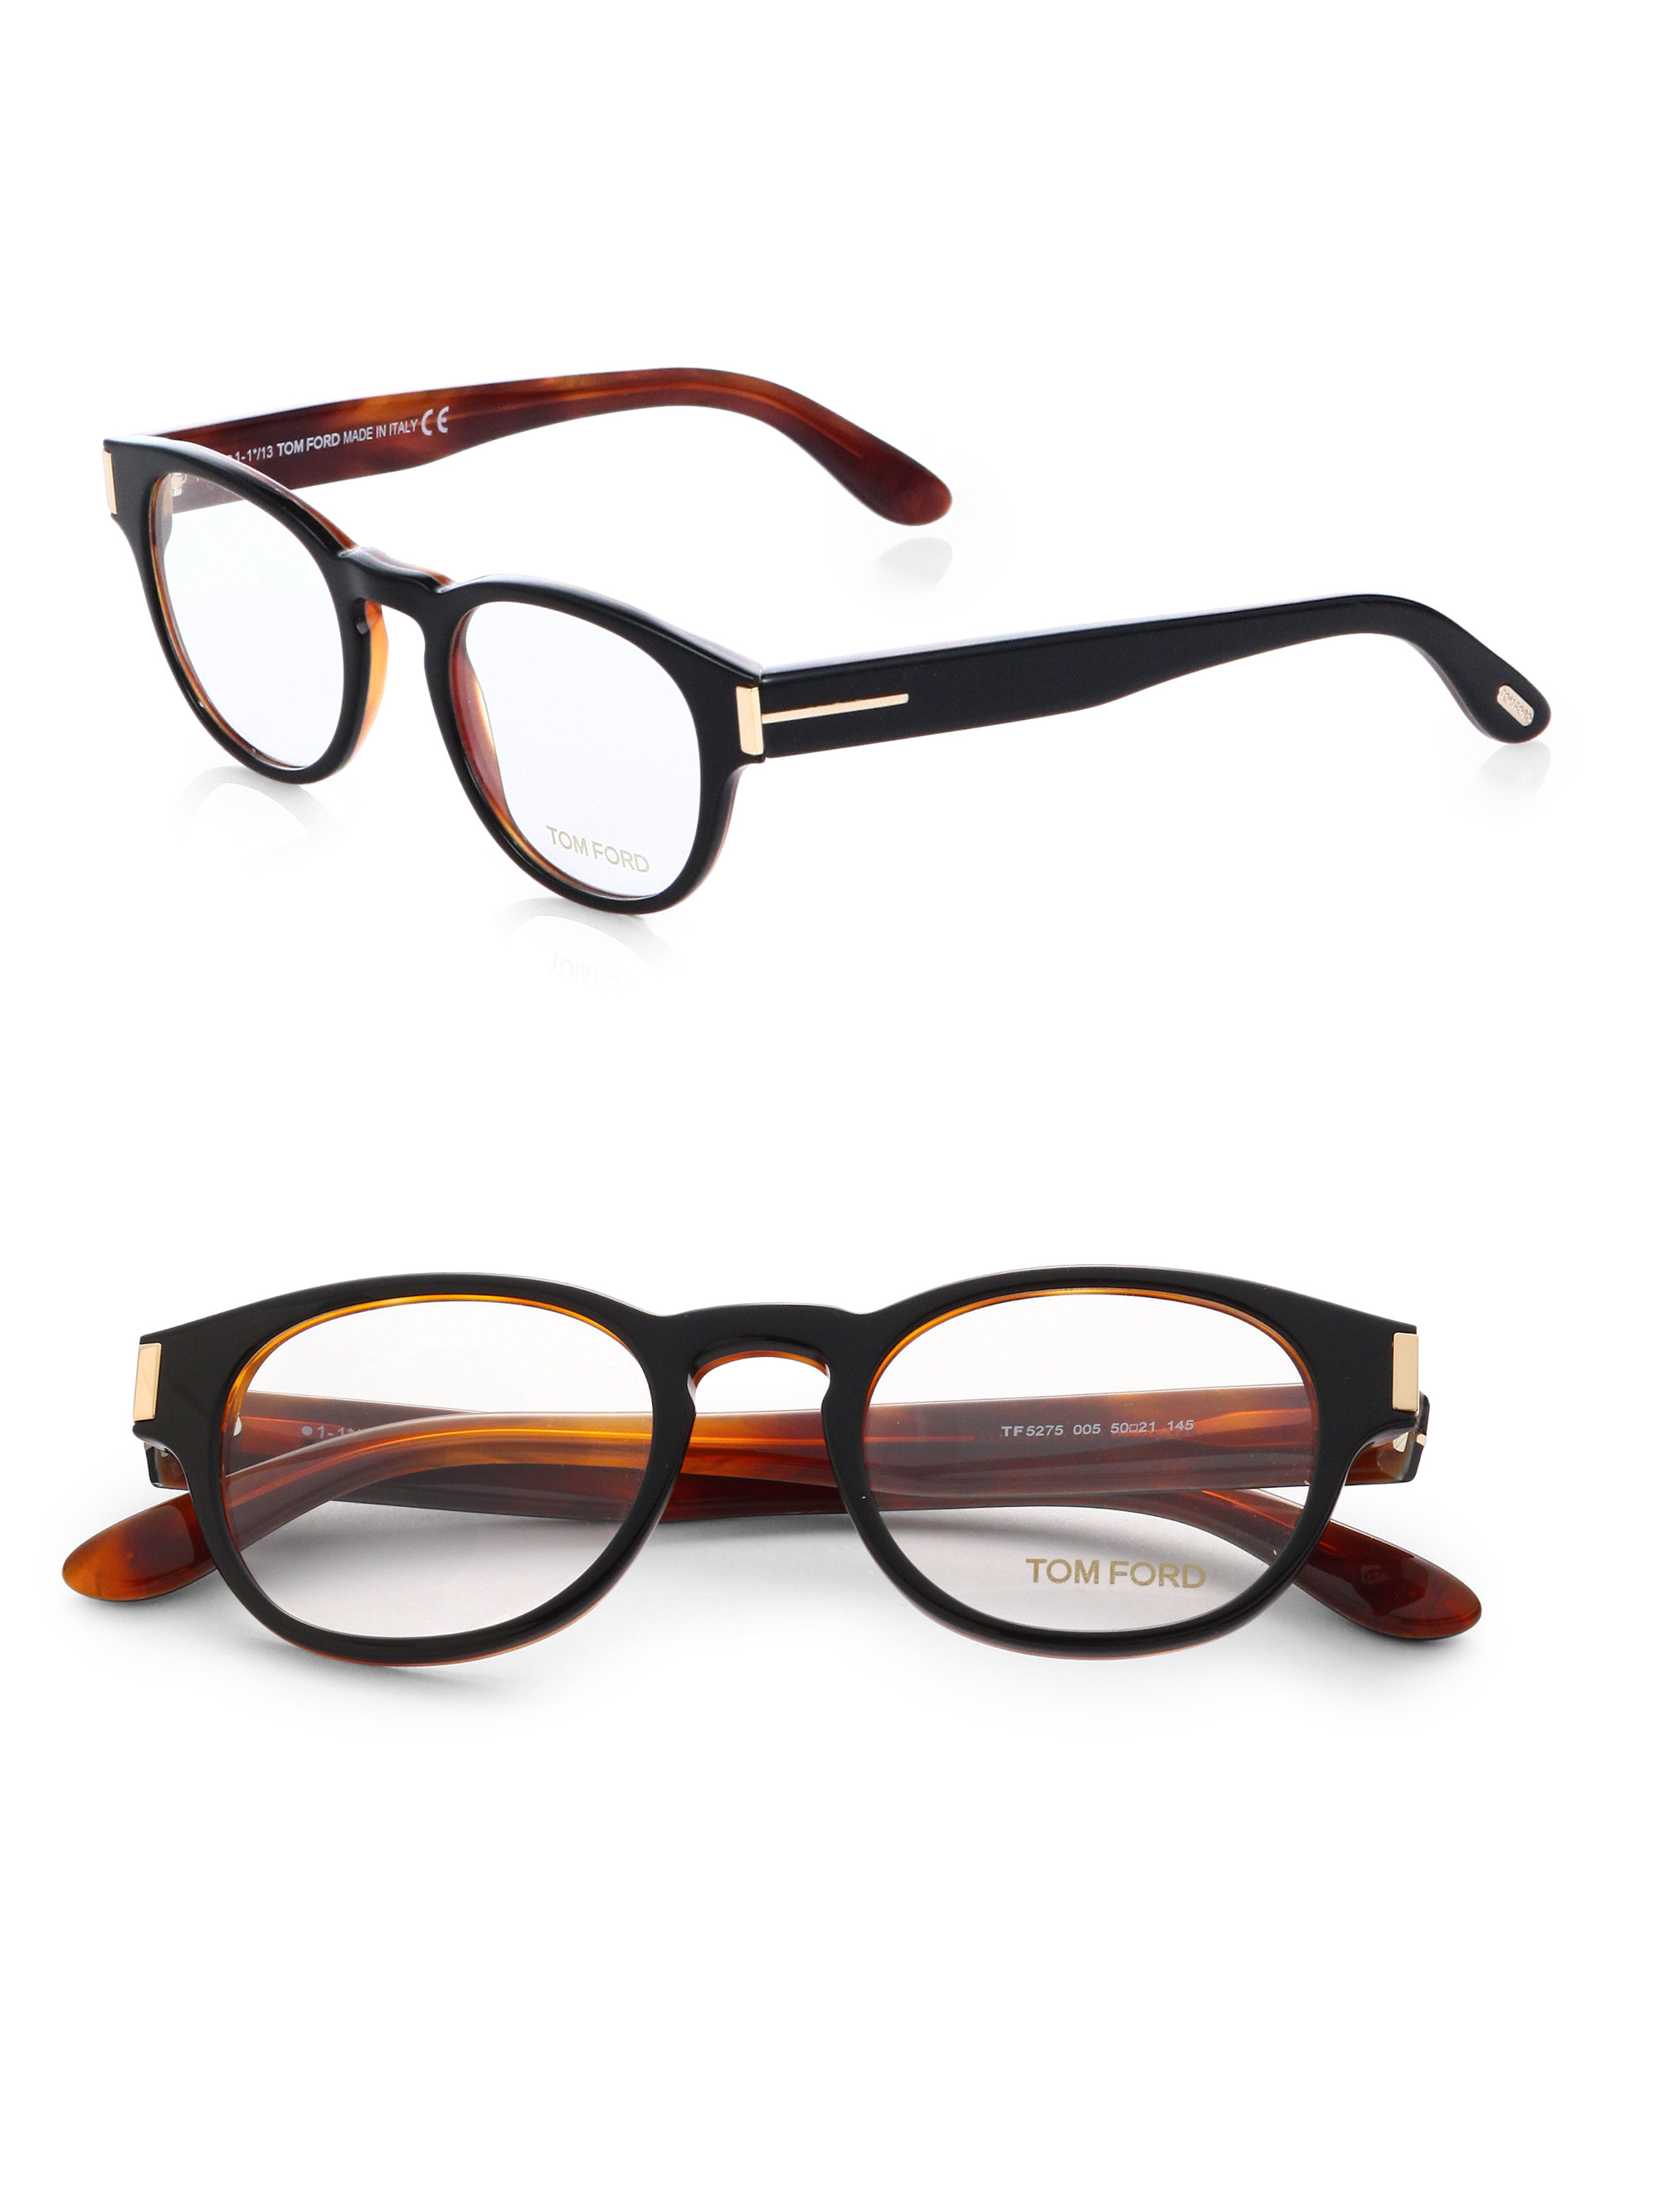 6a428e5ce60 Lyst - Tom Ford Round Eyeglasses in Black